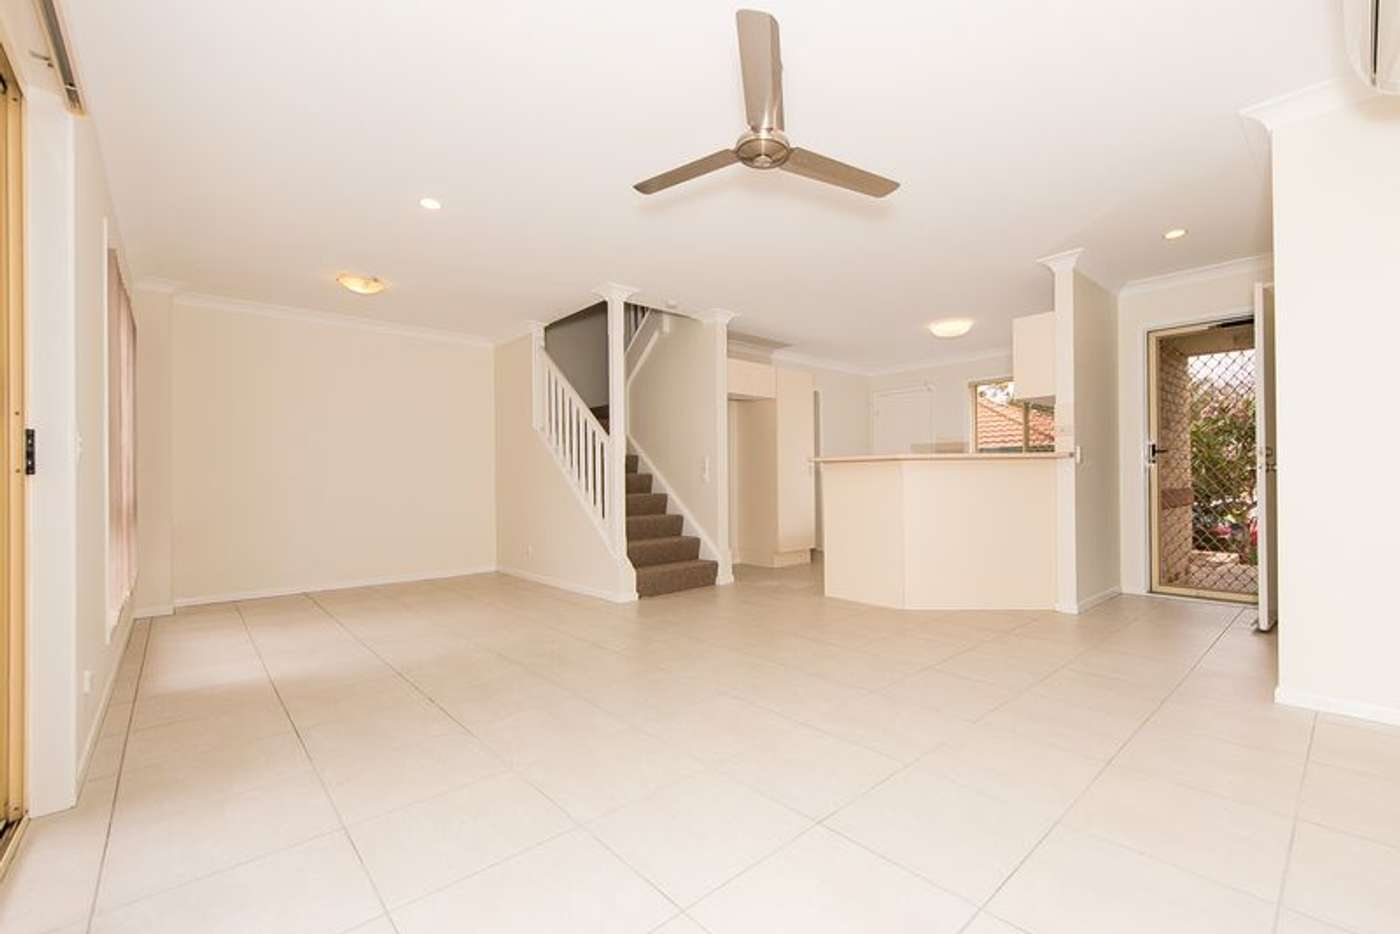 Seventh view of Homely townhouse listing, 83/21 Leviathan Drive, Mudgeeraba QLD 4213